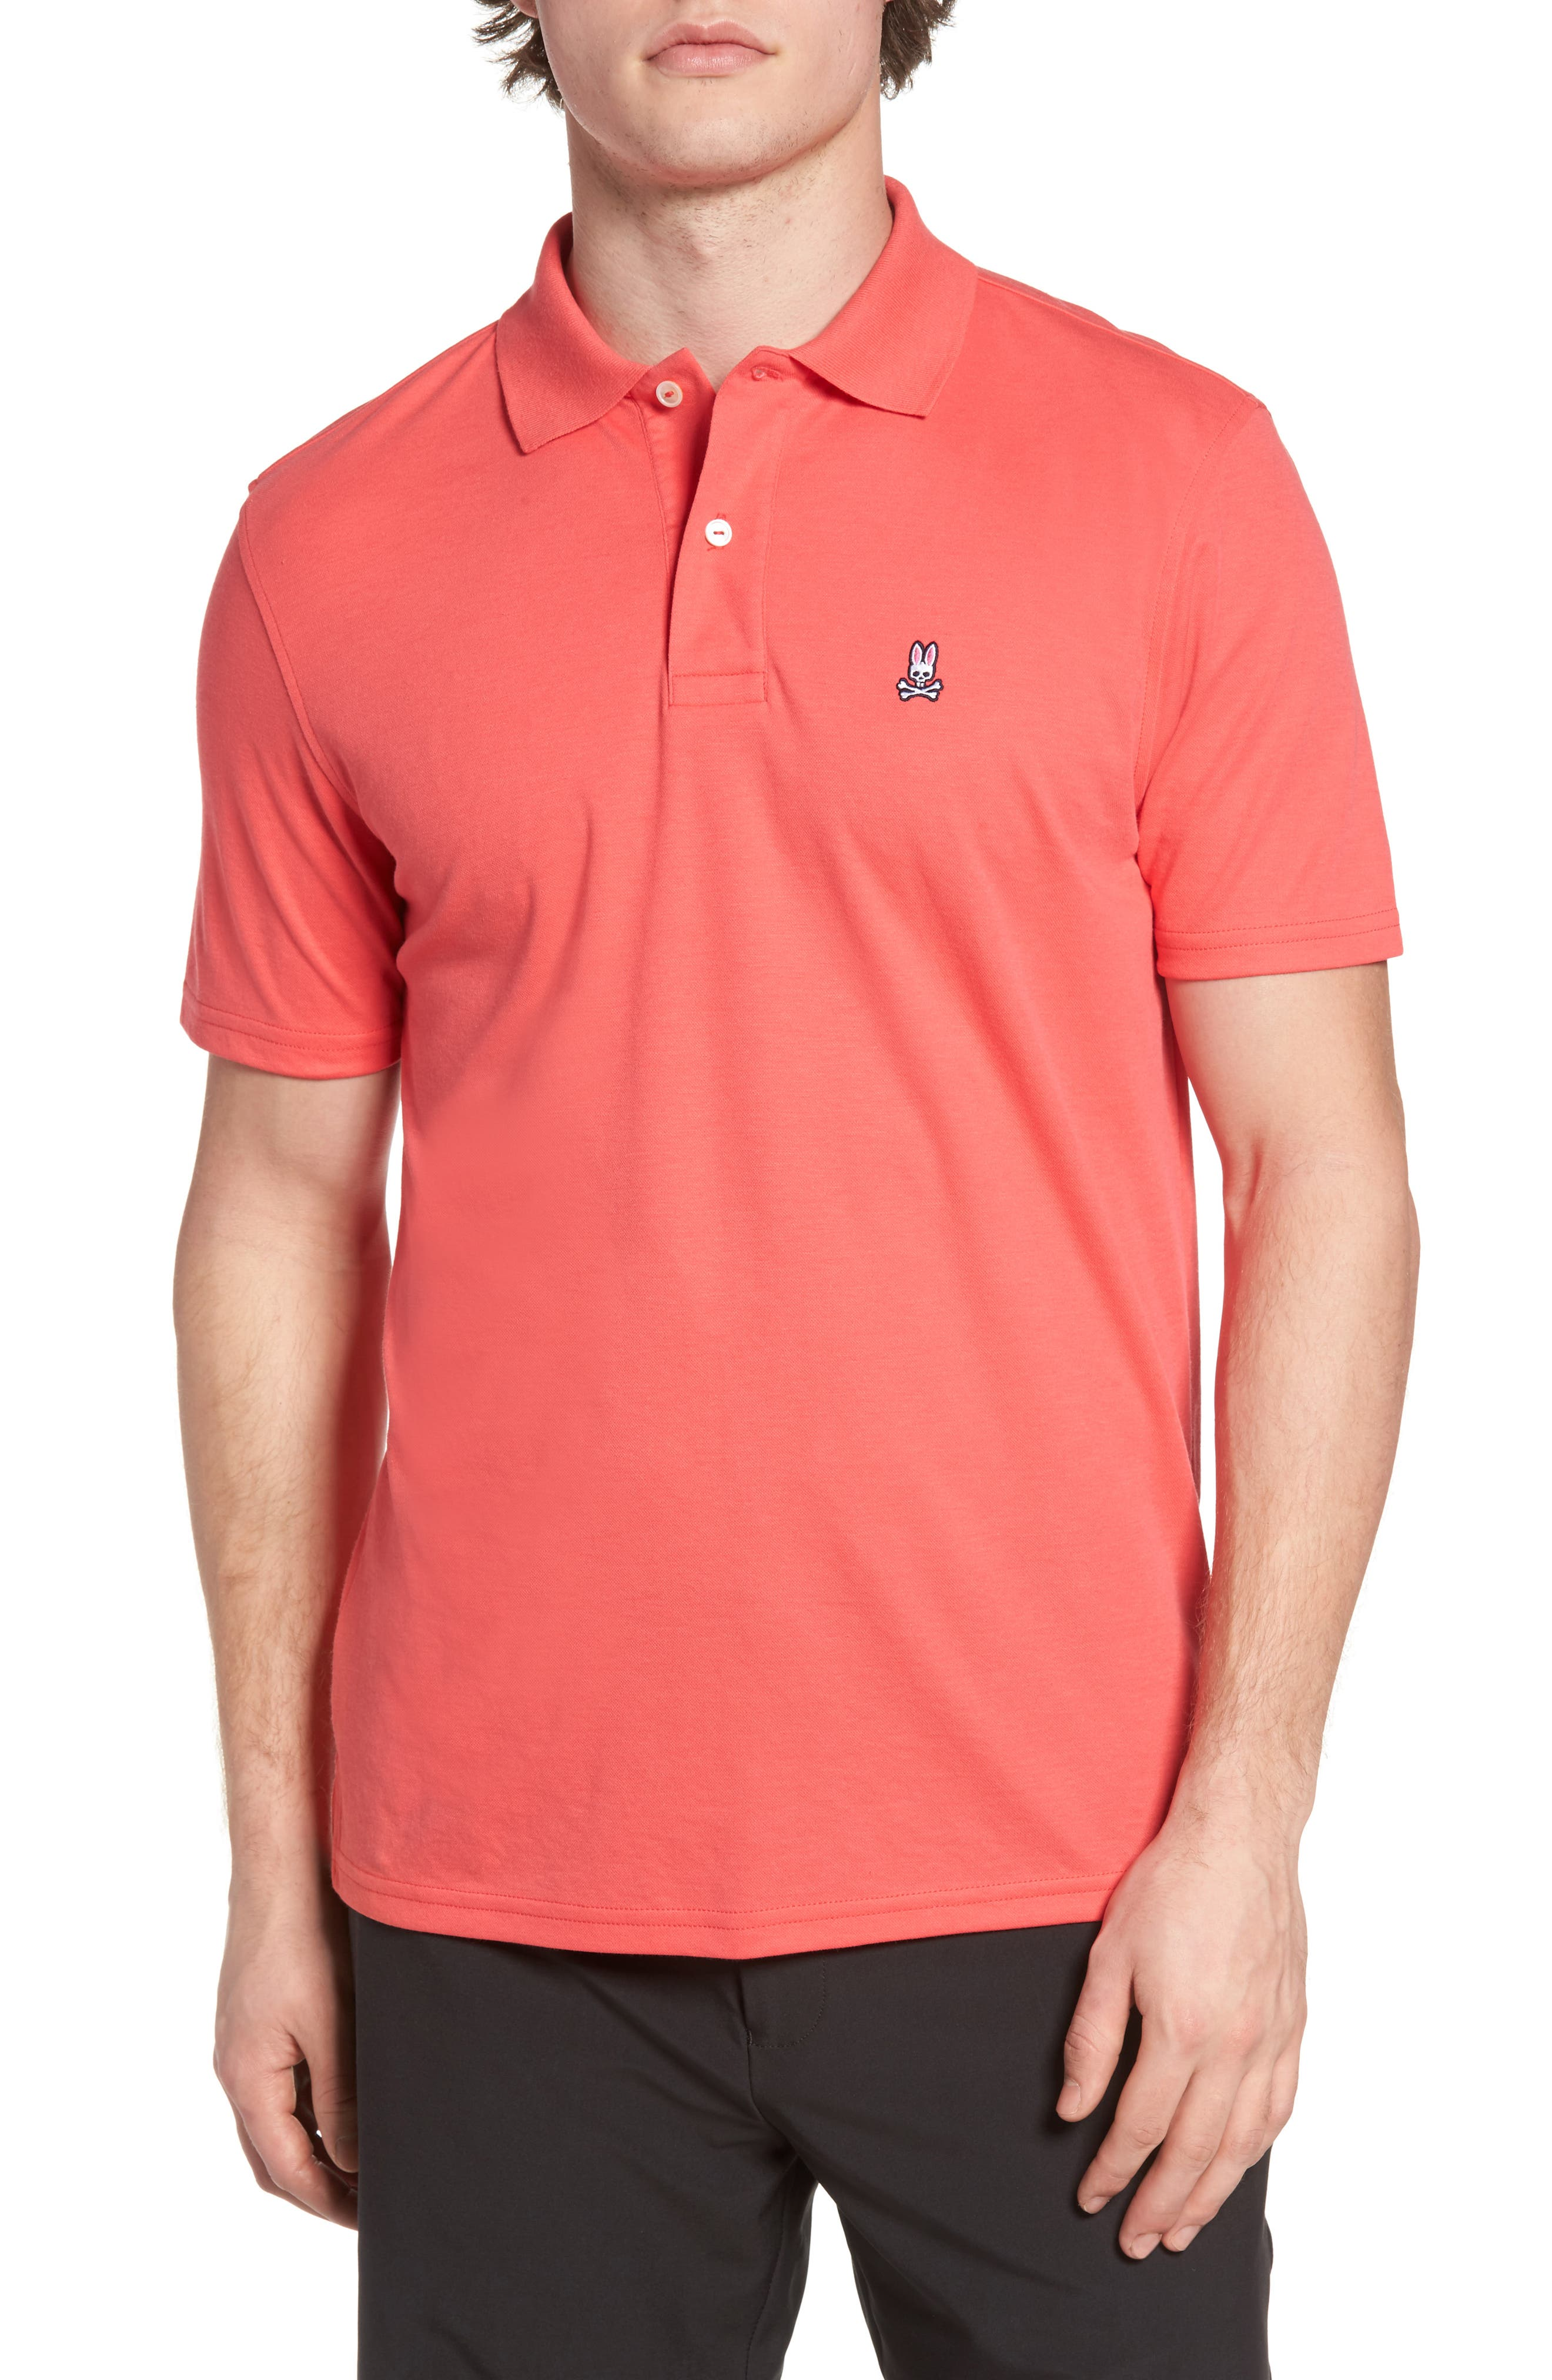 Alternate Image 1 Selected - Psycho Bunny Golf Polo